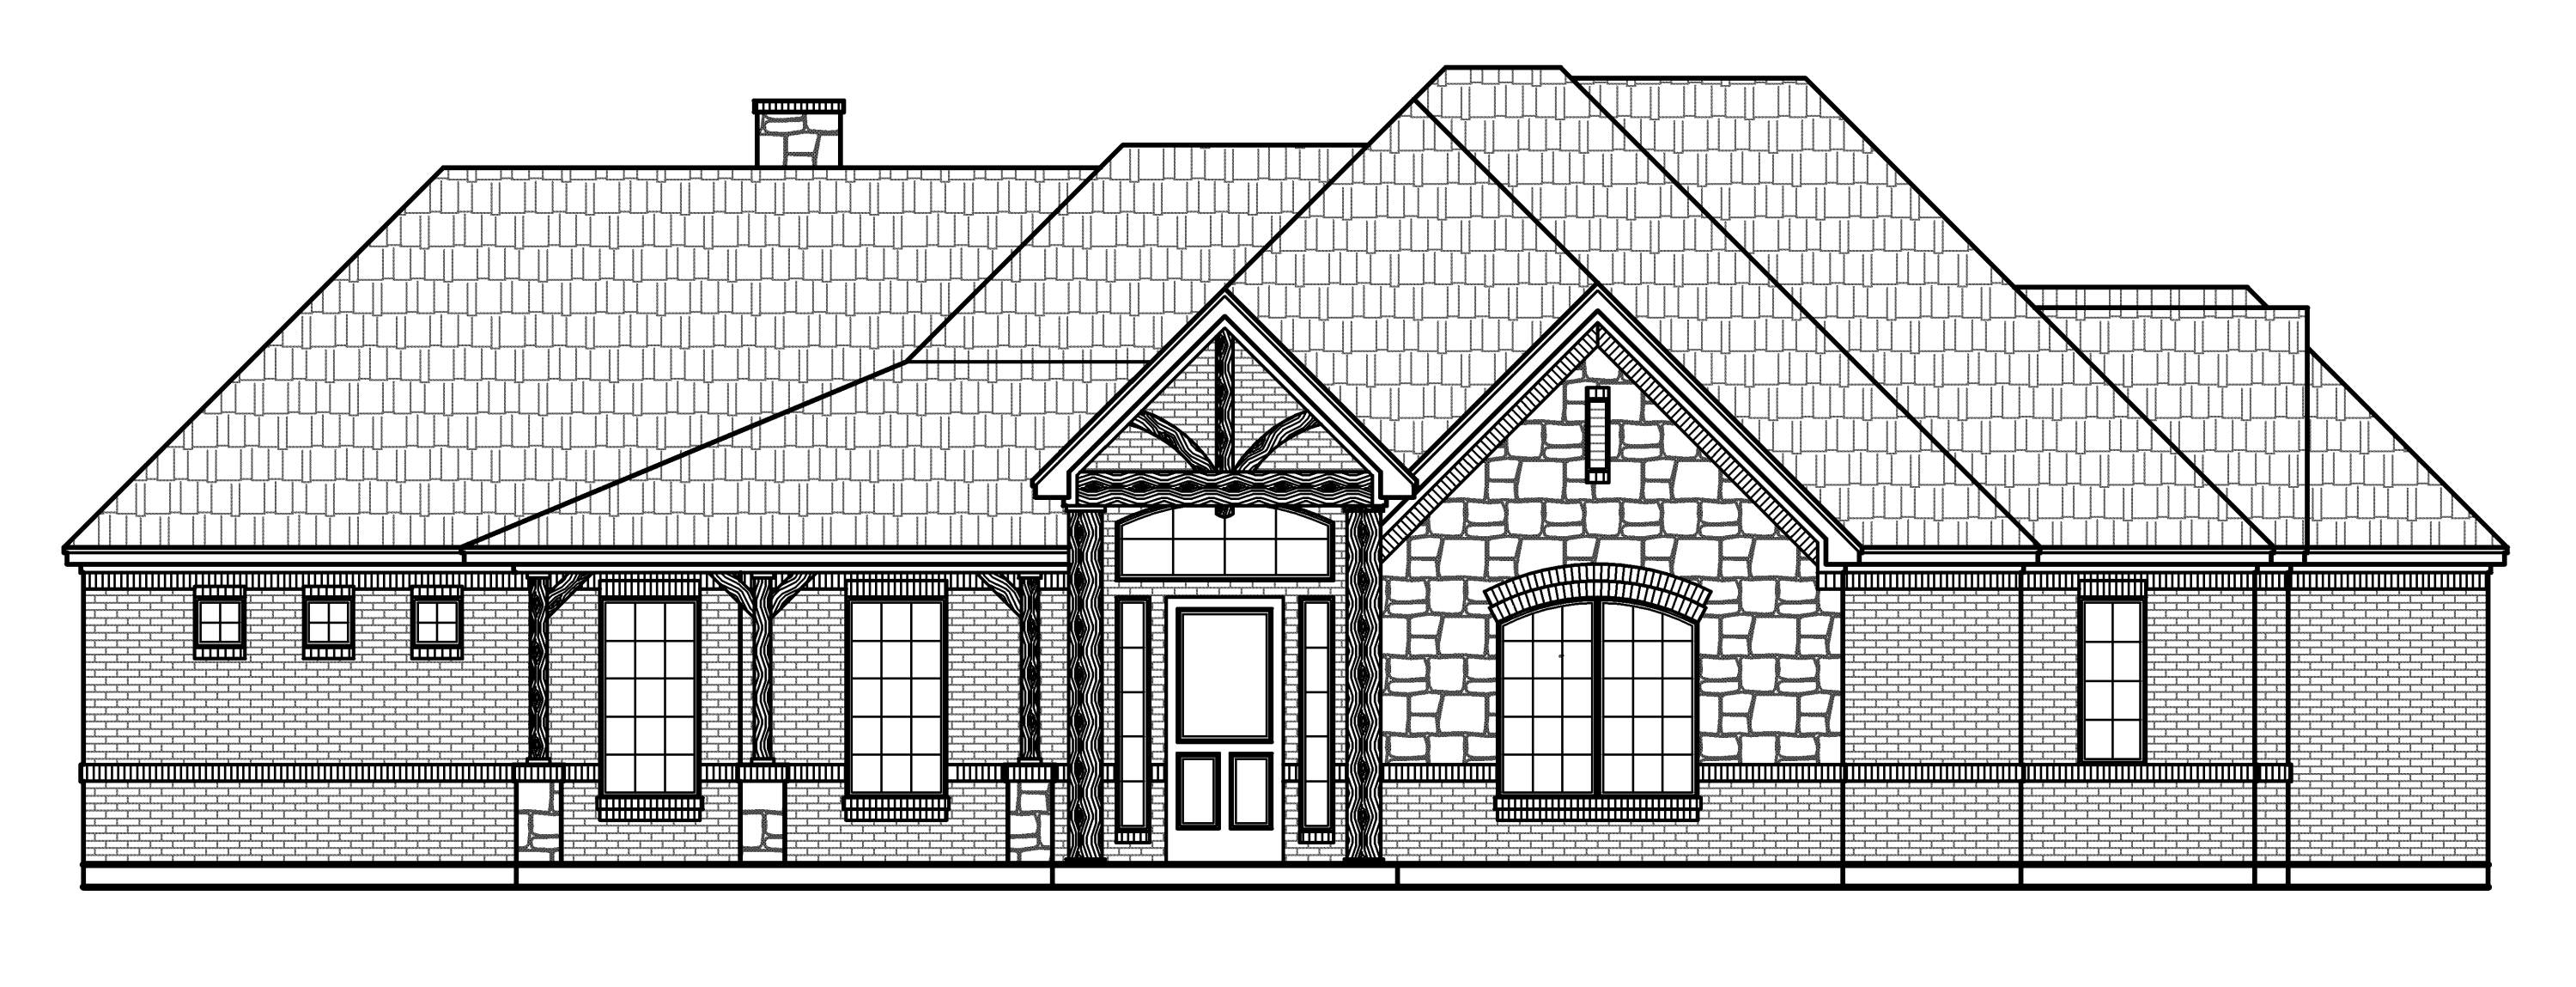 s2149r | texas house plans - over 700 proven home designs online